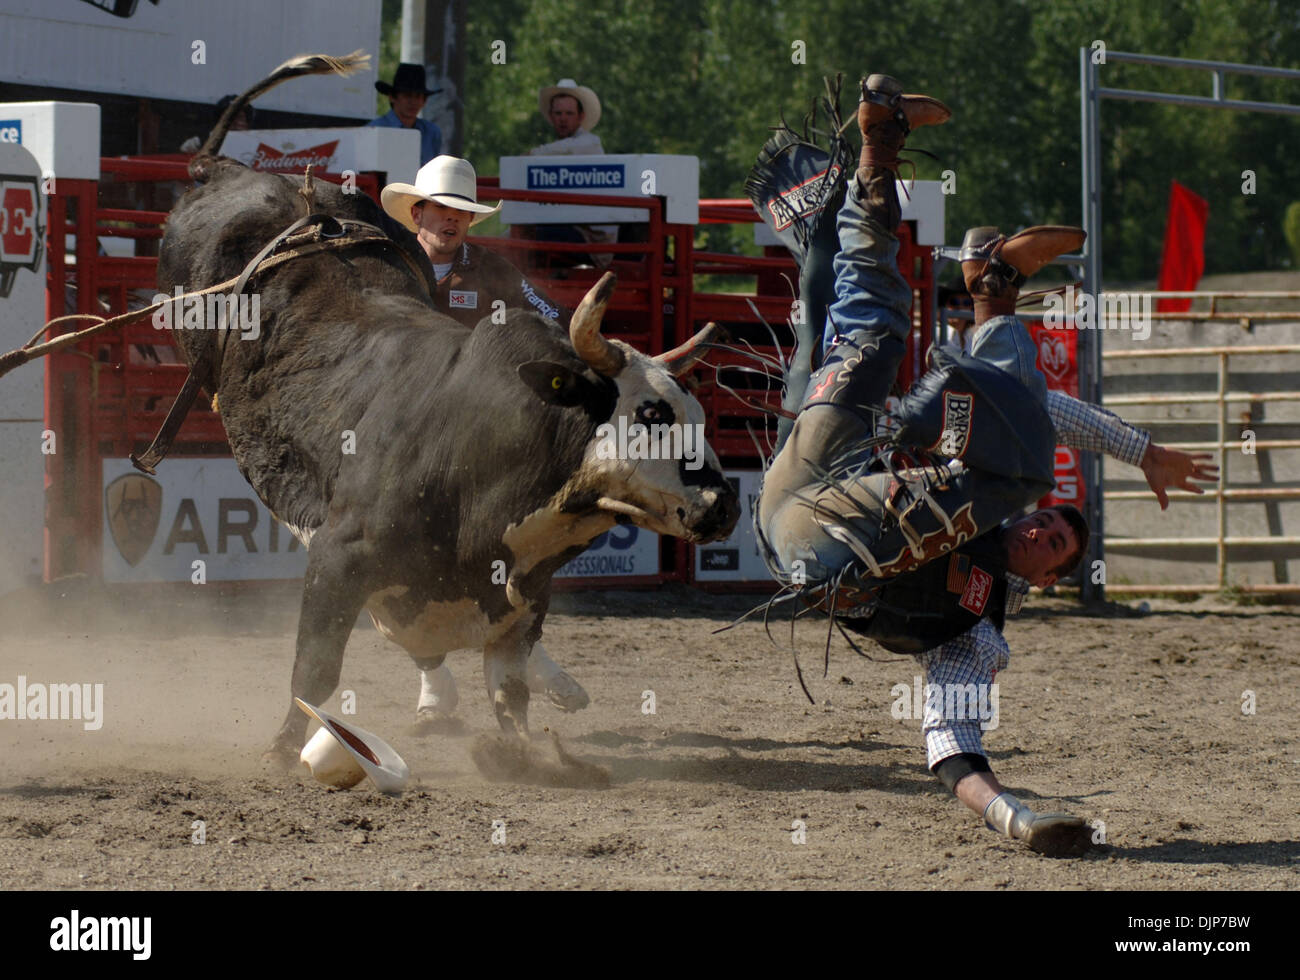 May 18, 2008 - Cloverdale, British Columbia, Canada - Cowboy competes in Bull Riding category at annual Cloverdale Professional Rodeo event. The rodeo was first held in 1945 and proved so popular that it was taken over by the Lower Fraser Valley Agricultural Association in 1947. In 1962, the fair was taken over by the Fraser Valley Exhibition Society, and in 1994, the fair and rode Stock Photo